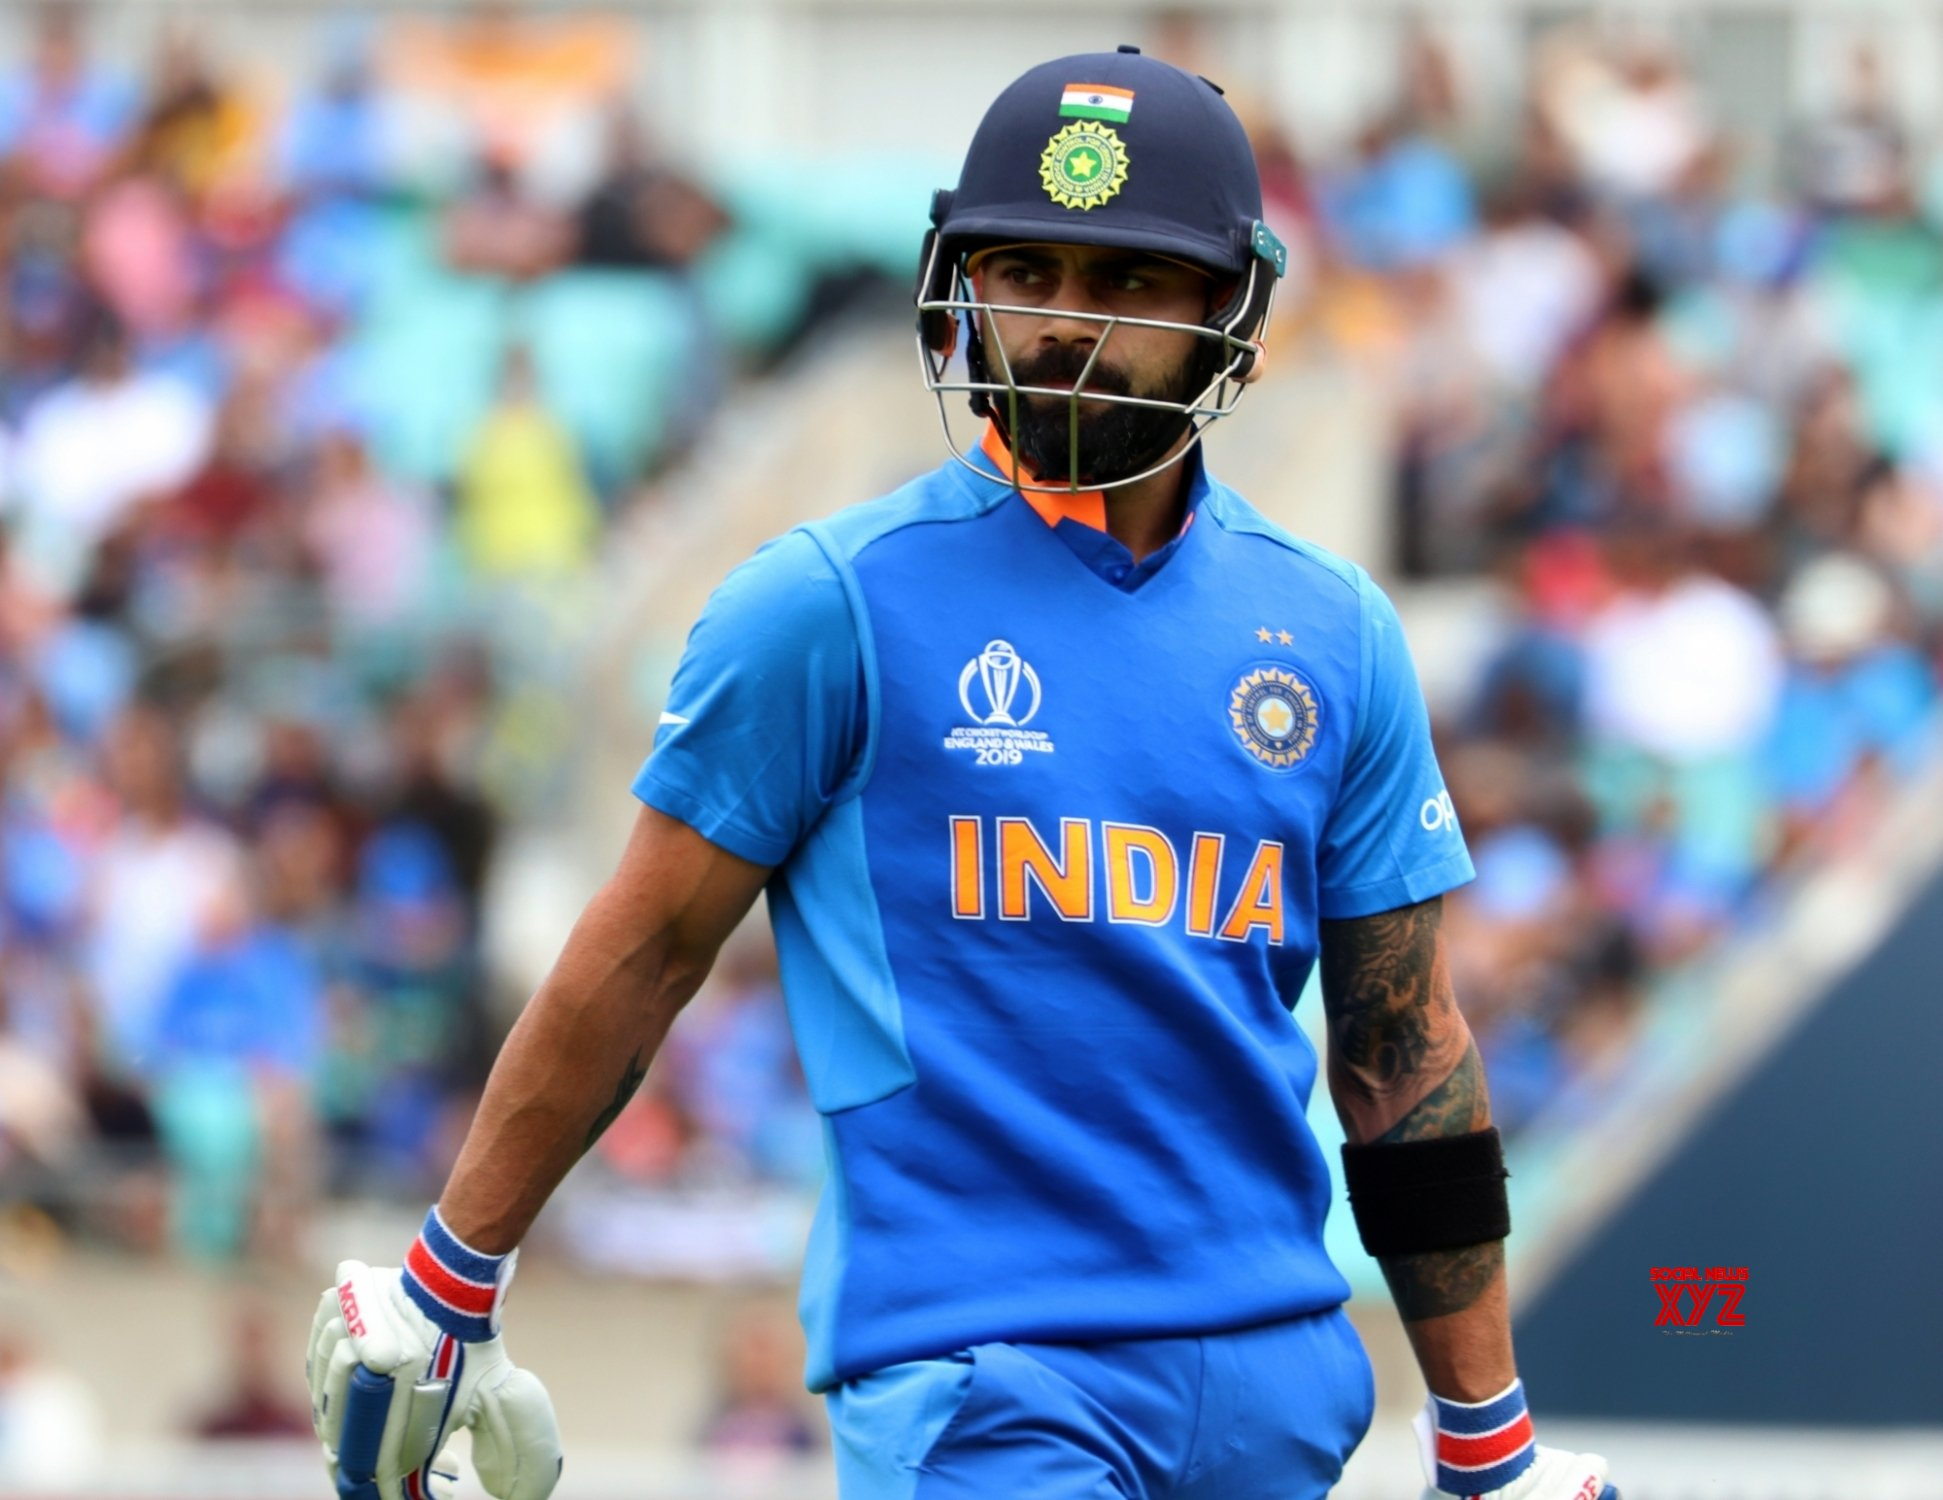 London: ICC World Cup Warm - up Match - India Vs New Zealand (Batch - 6) #Gallery